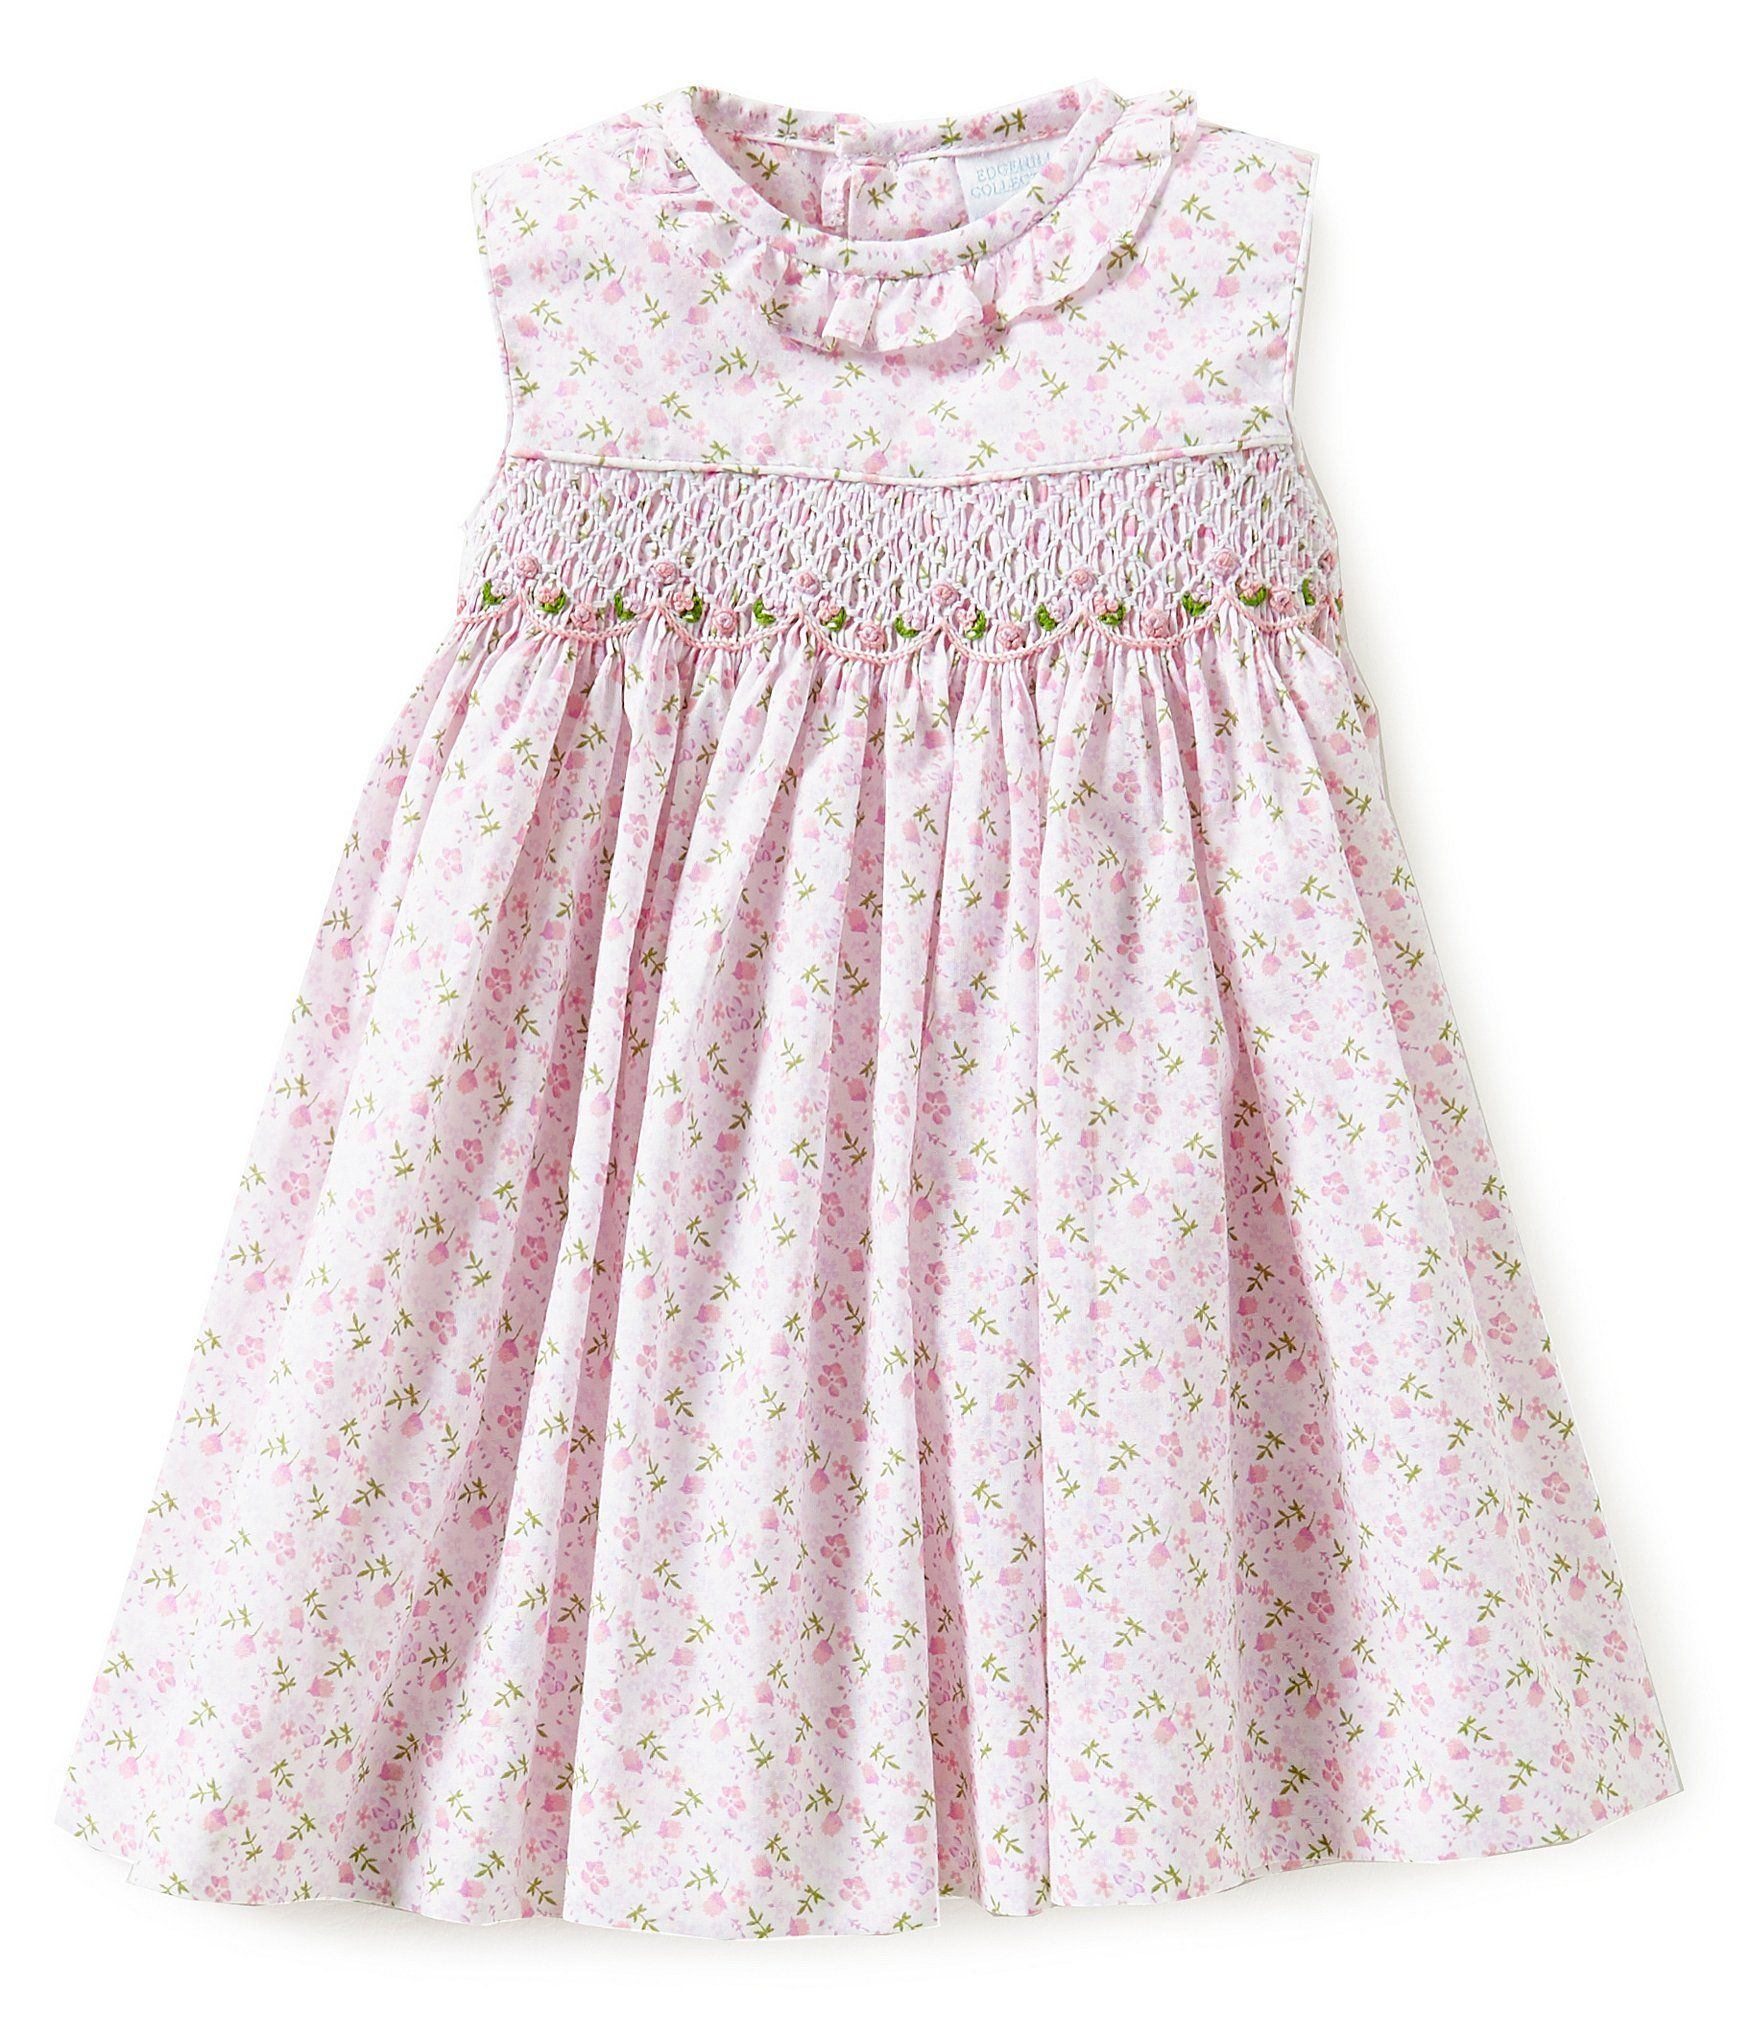 Shop for Edgehill Collection Baby Girls 3 24 Months Floral Print